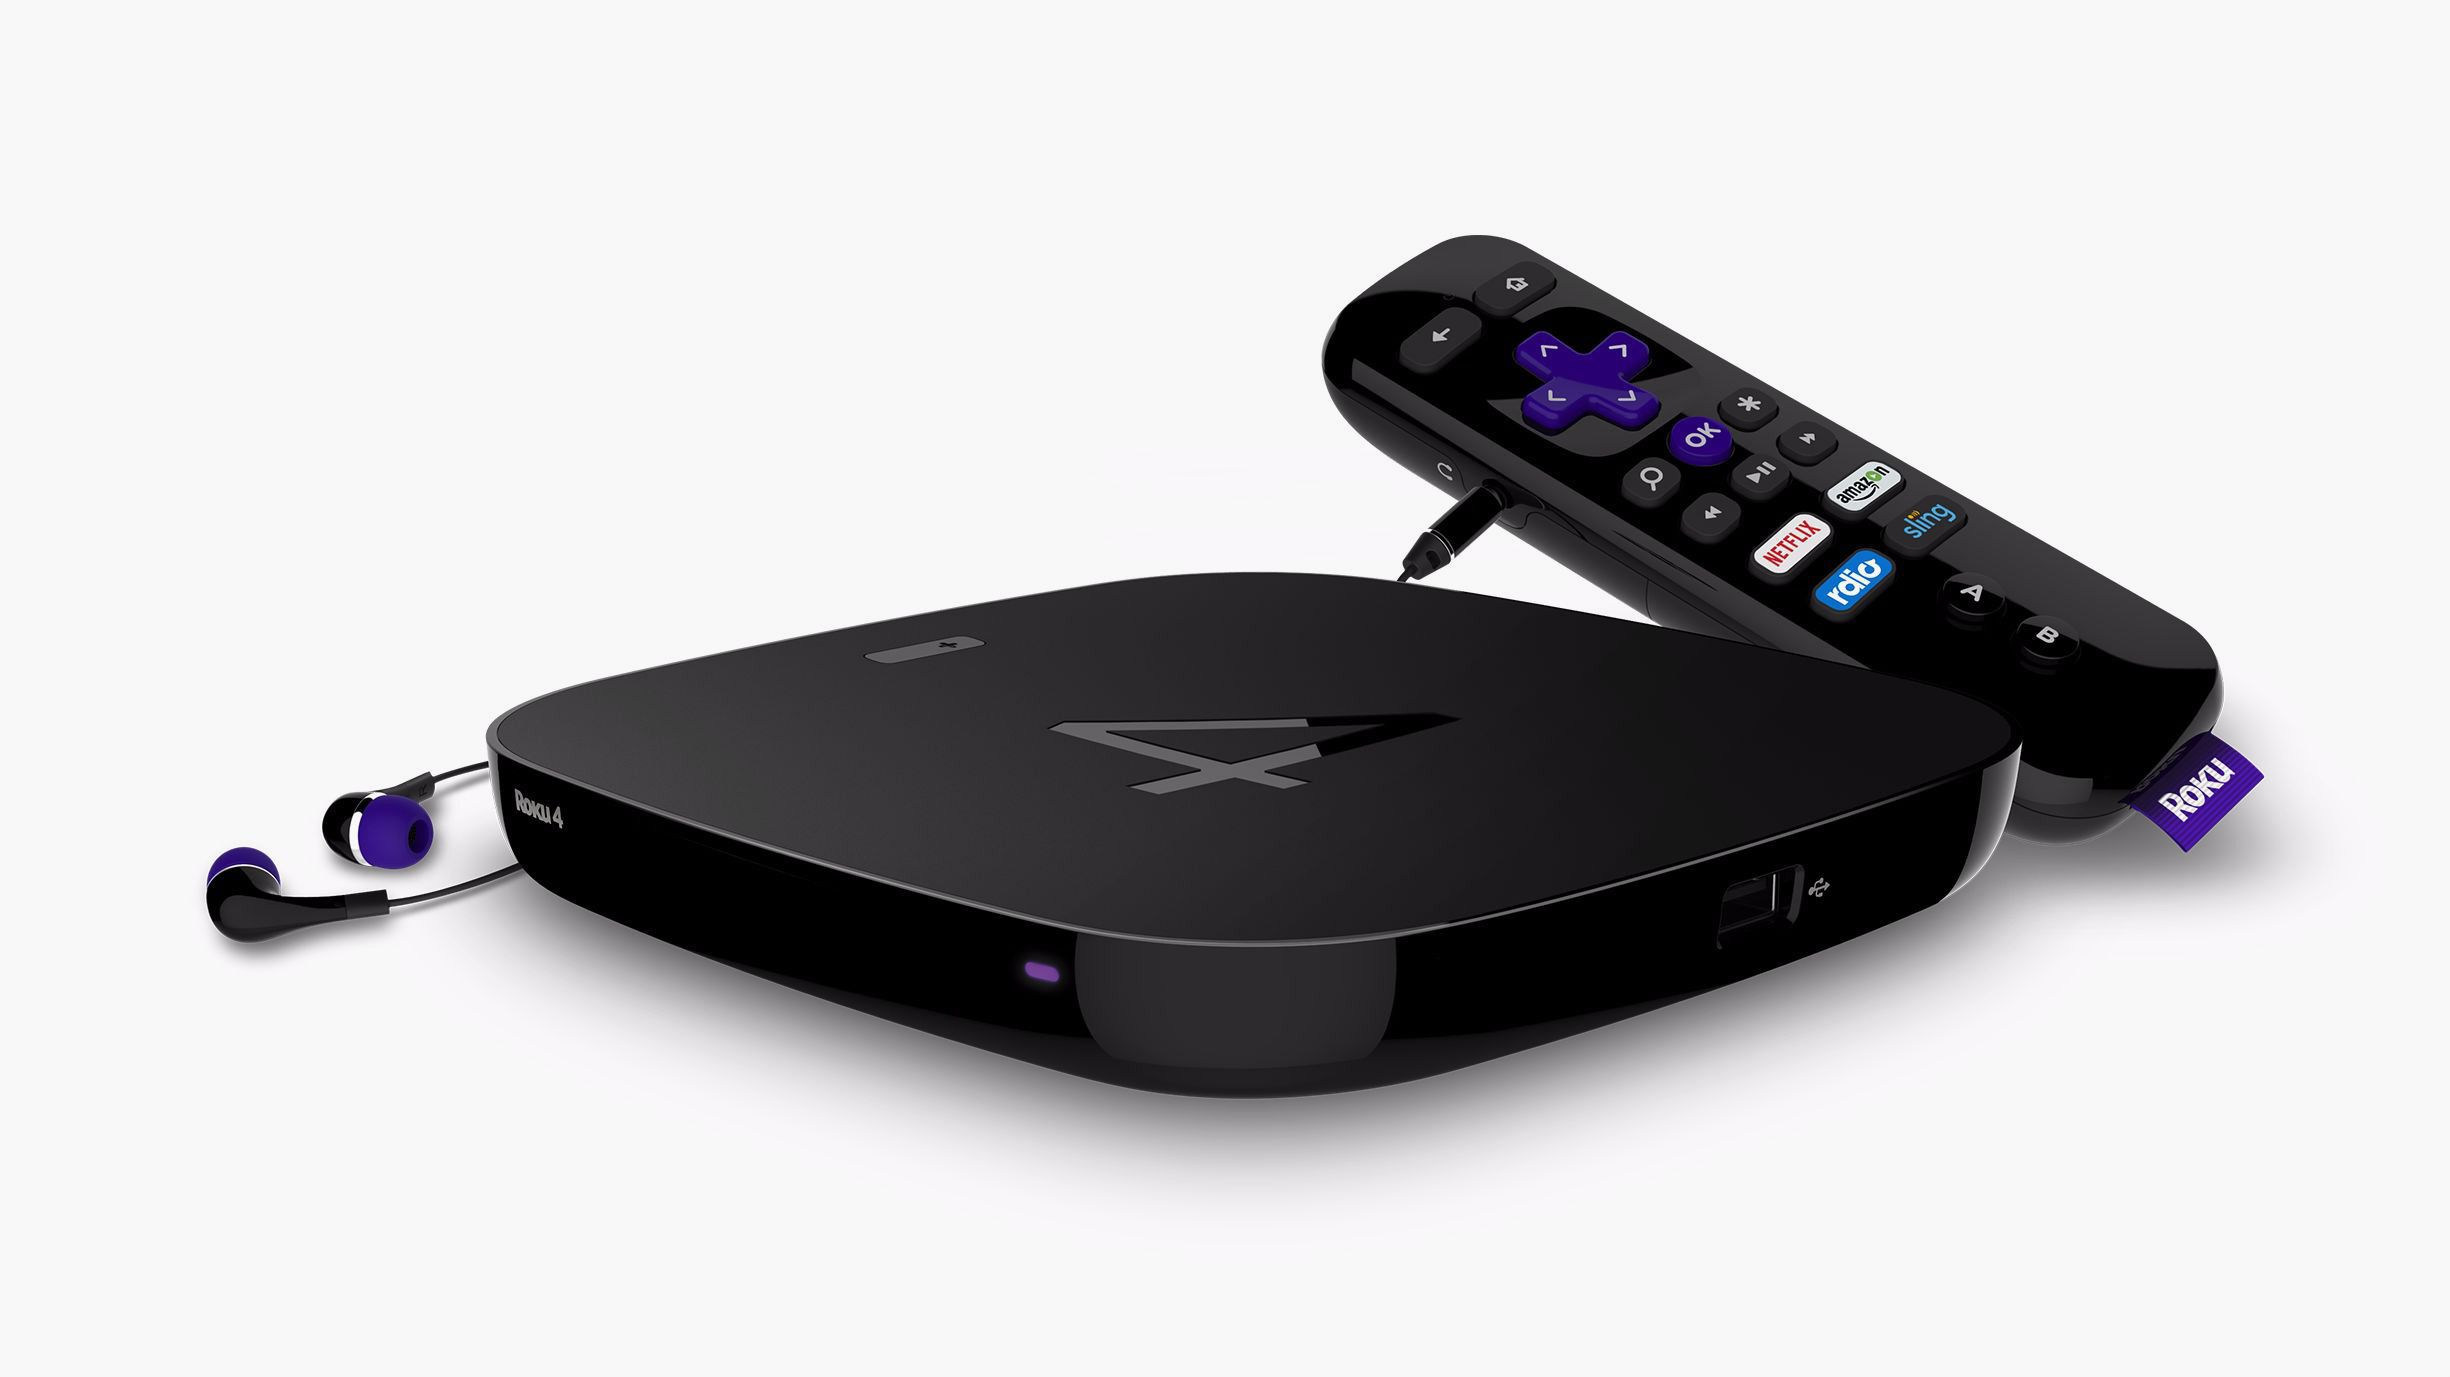 Chromecast gains fans, but Roku's devices are still the most